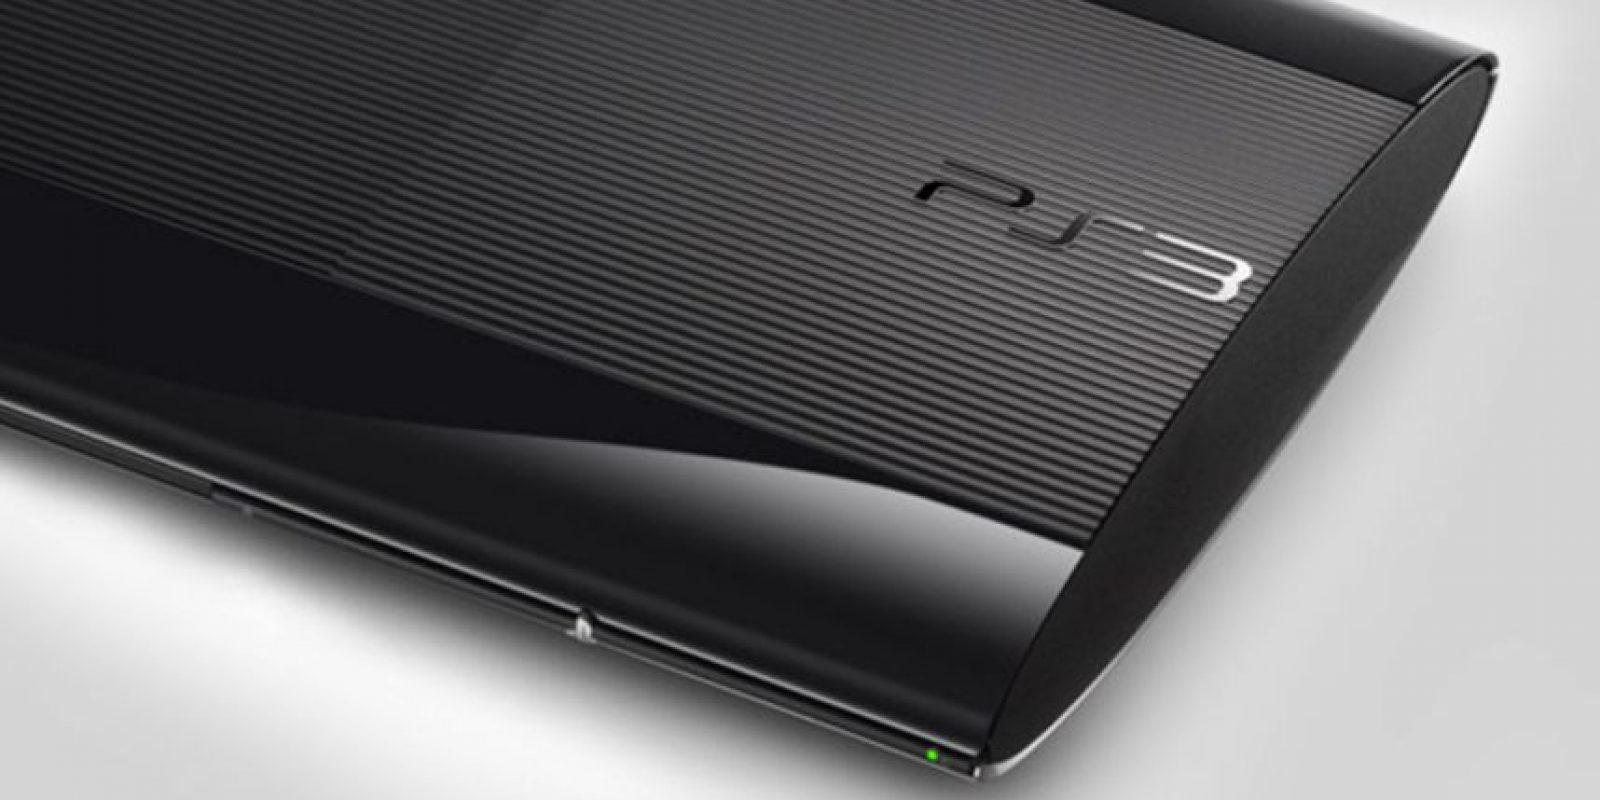 PlayStation 3 Slim Foto: SONY